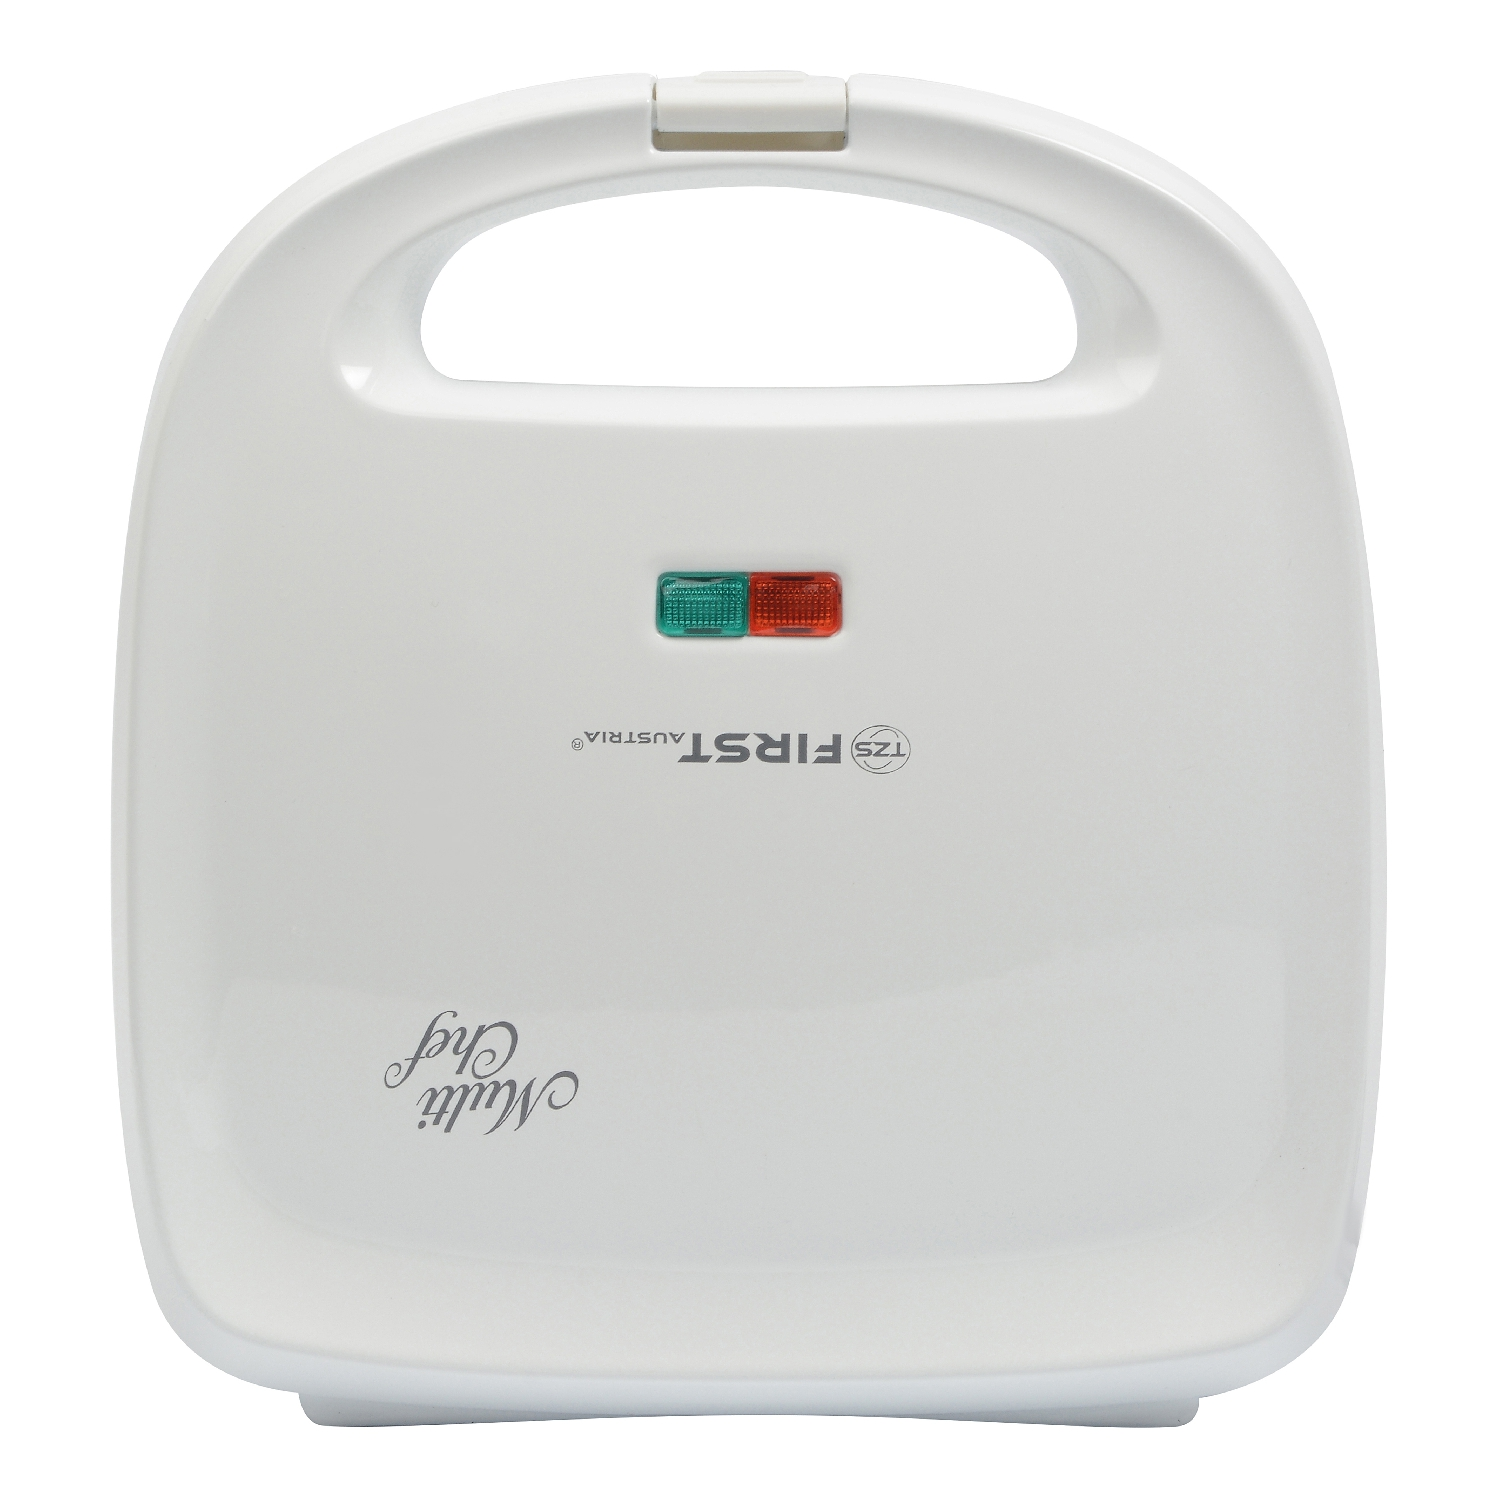 The sandwich toaster FIRST FA-5342-1 White hong kong popular industrial sandwich toaster price